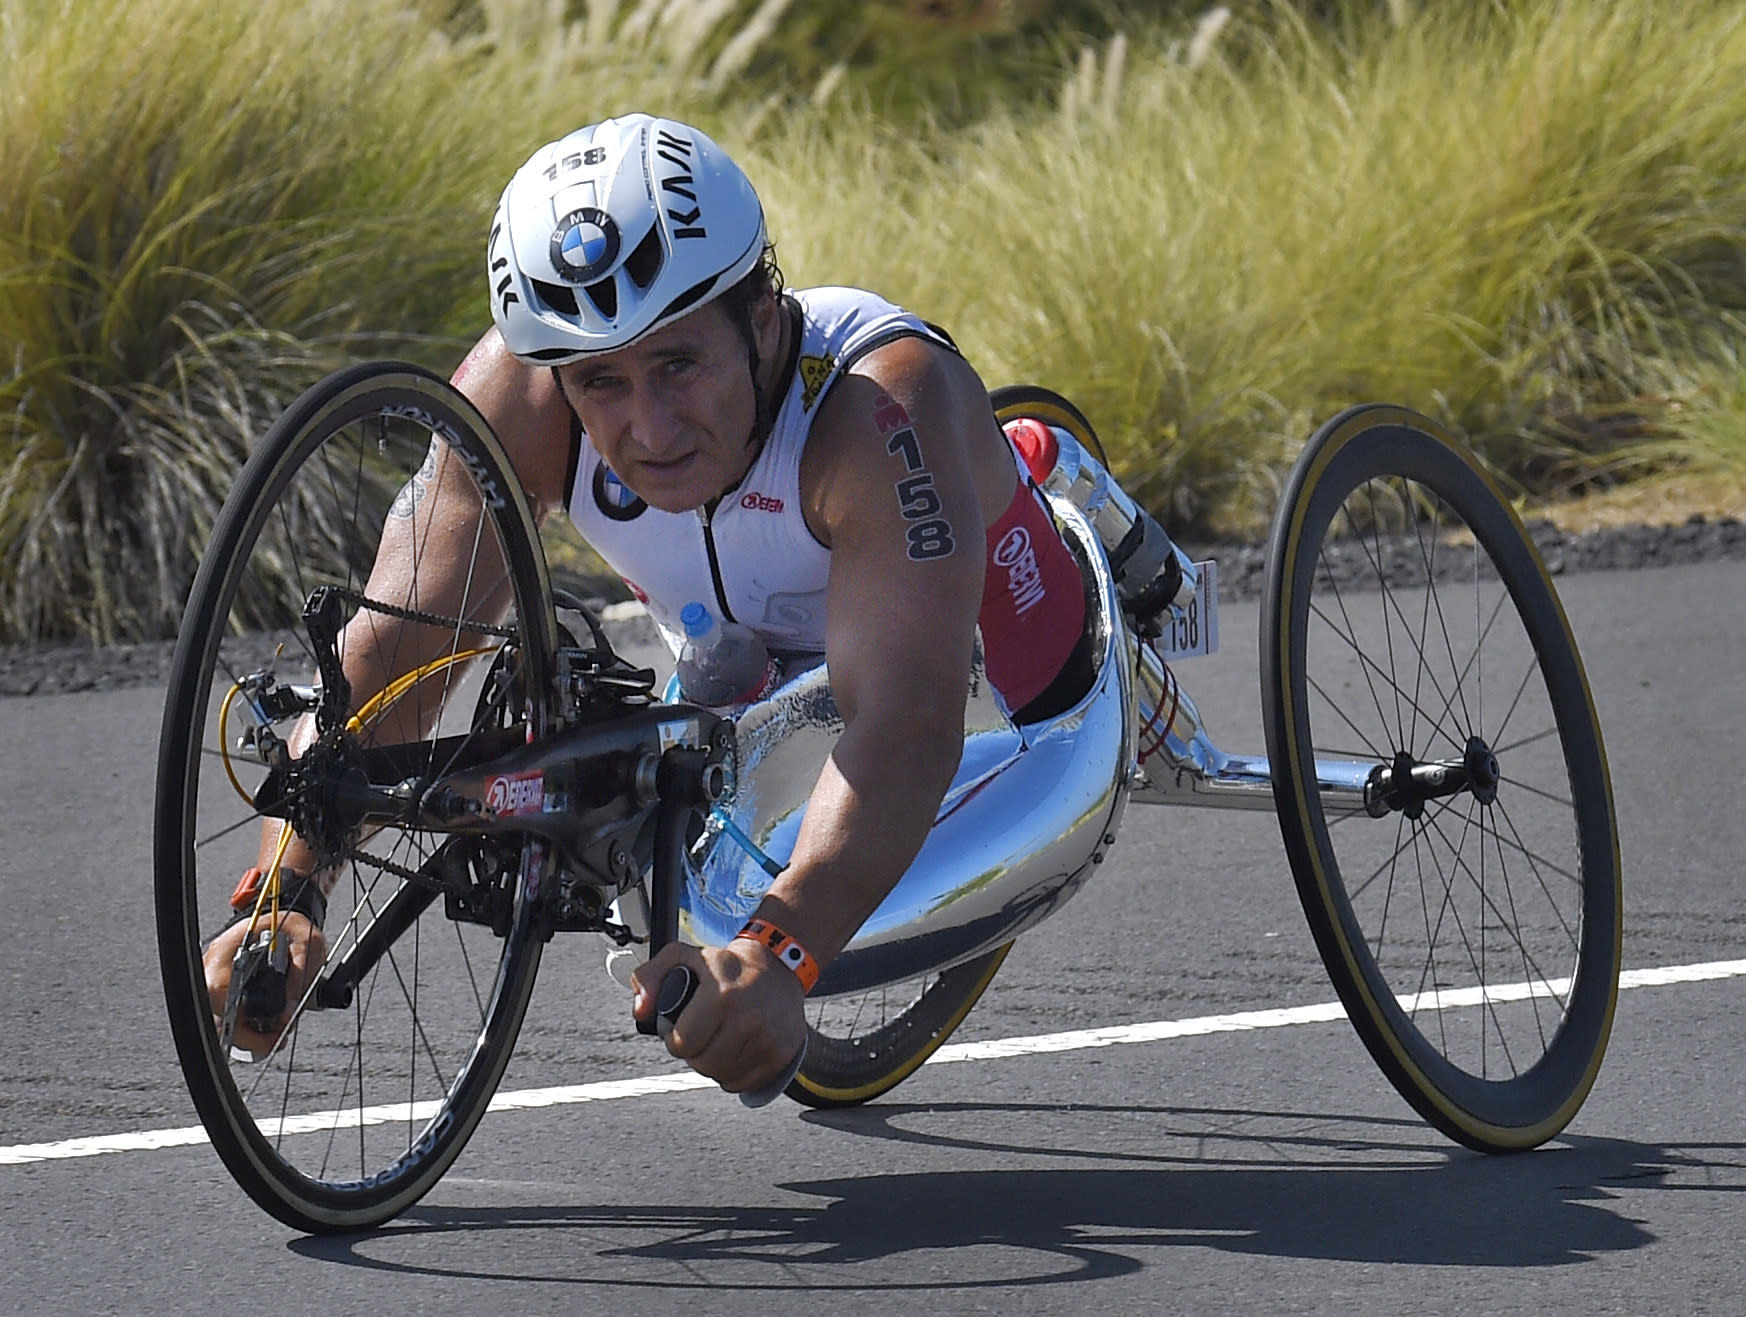 FILE - In this Oct. 10, 2015, file photo, Alex Zanardi, of Italy, rides during the cycling portion of the Ironman World Championship Triathlon, in Kailua-Kona, Hawaii. Zanardi has accomplished more since he lost both of his legs in a gruesome auto racing crash than many racers do in a lifetime. The latest achievement for the two-time CART champion and four-time Paralympic gold medalist is this weekend's Rolex 24 at Daytona endurance race. (AP Photo/Mark J. Terrill, File)